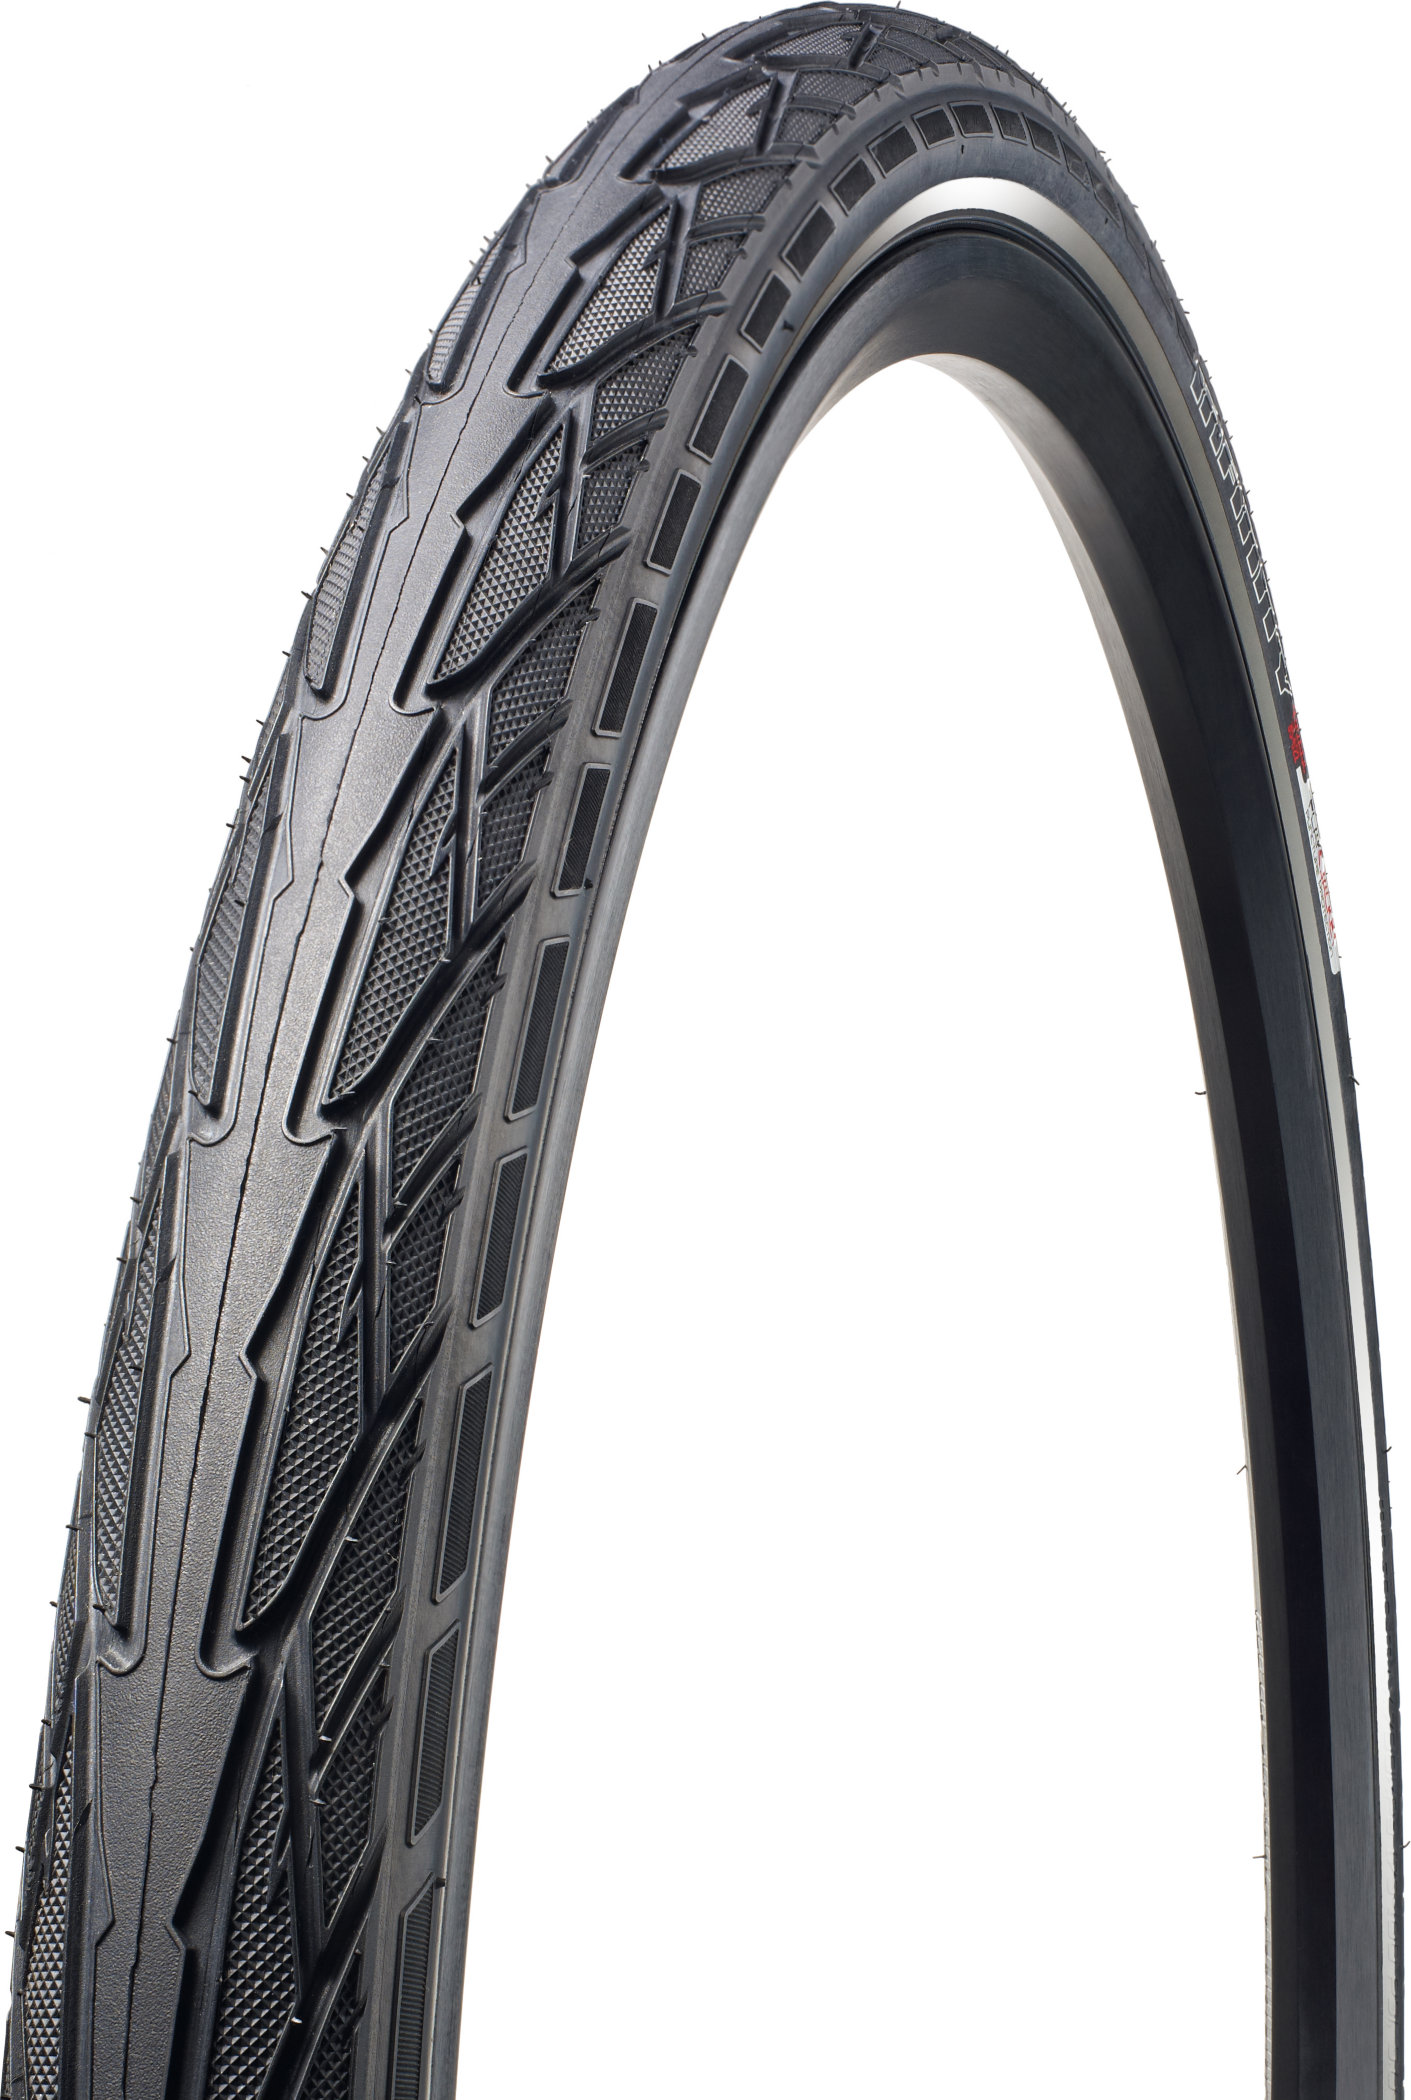 SPECIALIZED INFINITY ARM REFLECT TIRE 700X47C - SPECIALIZED INFINITY ARM REFLECT TIRE 700X47C